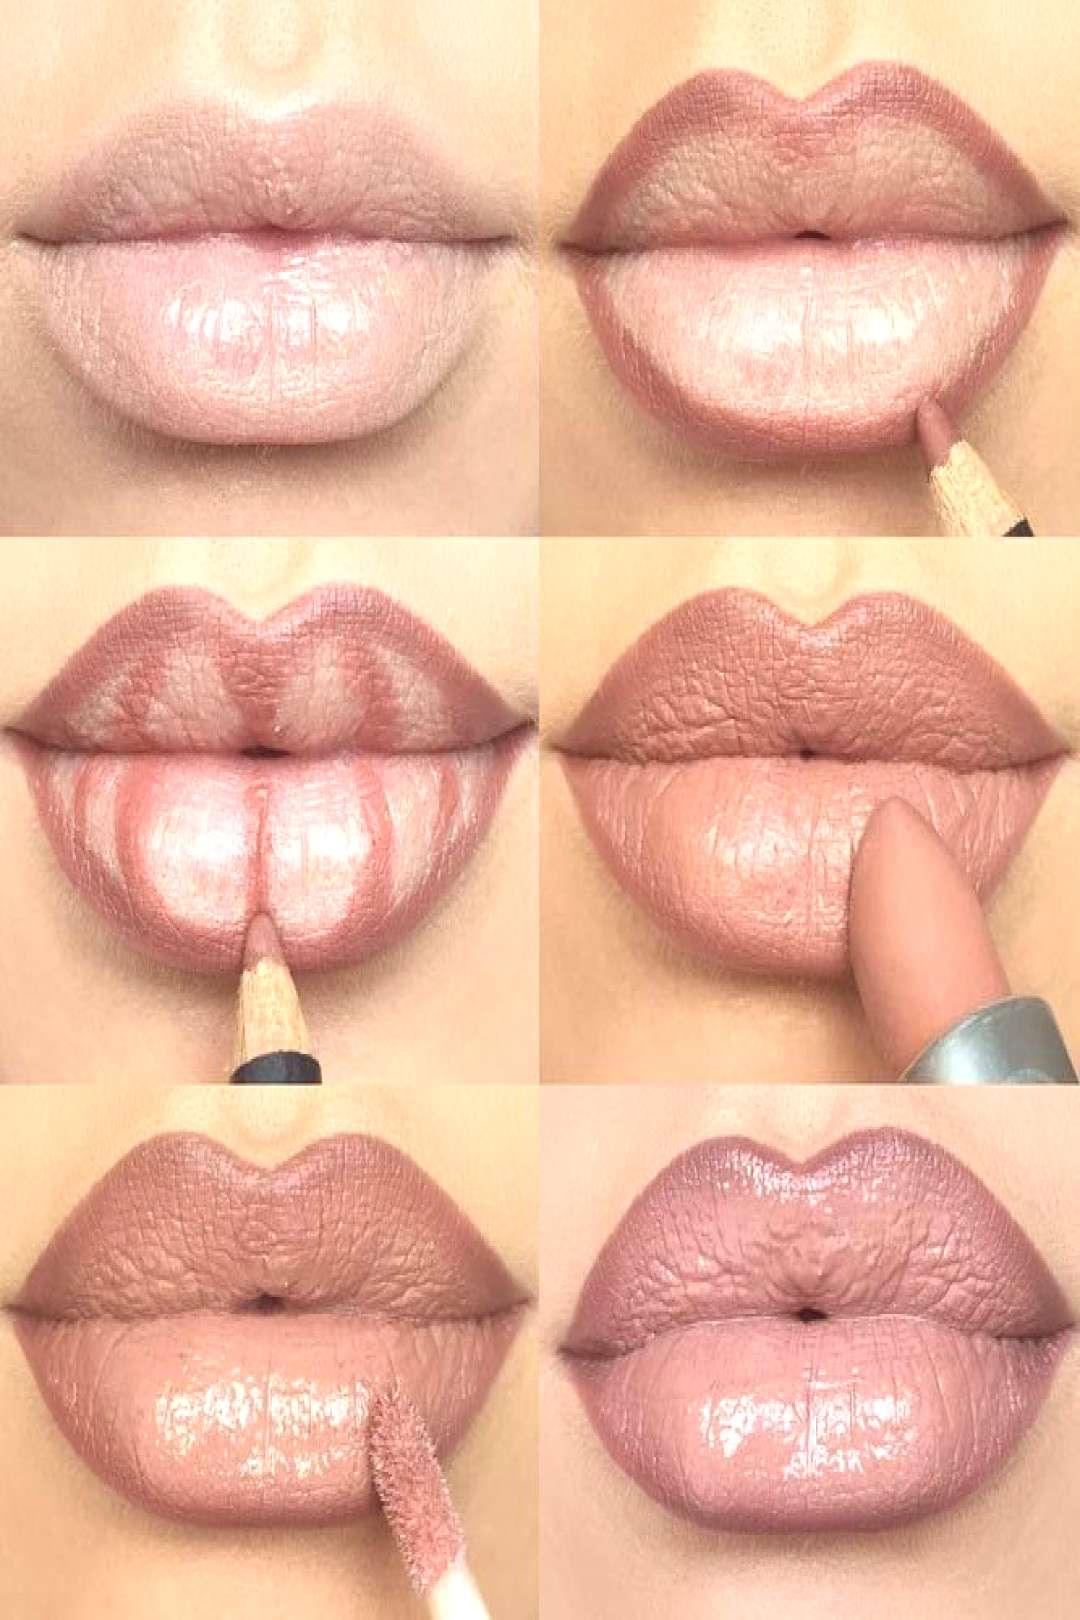 Lips full of make-up: lip contouring and ombré lips are the trend - new best - ... -  Lips full of